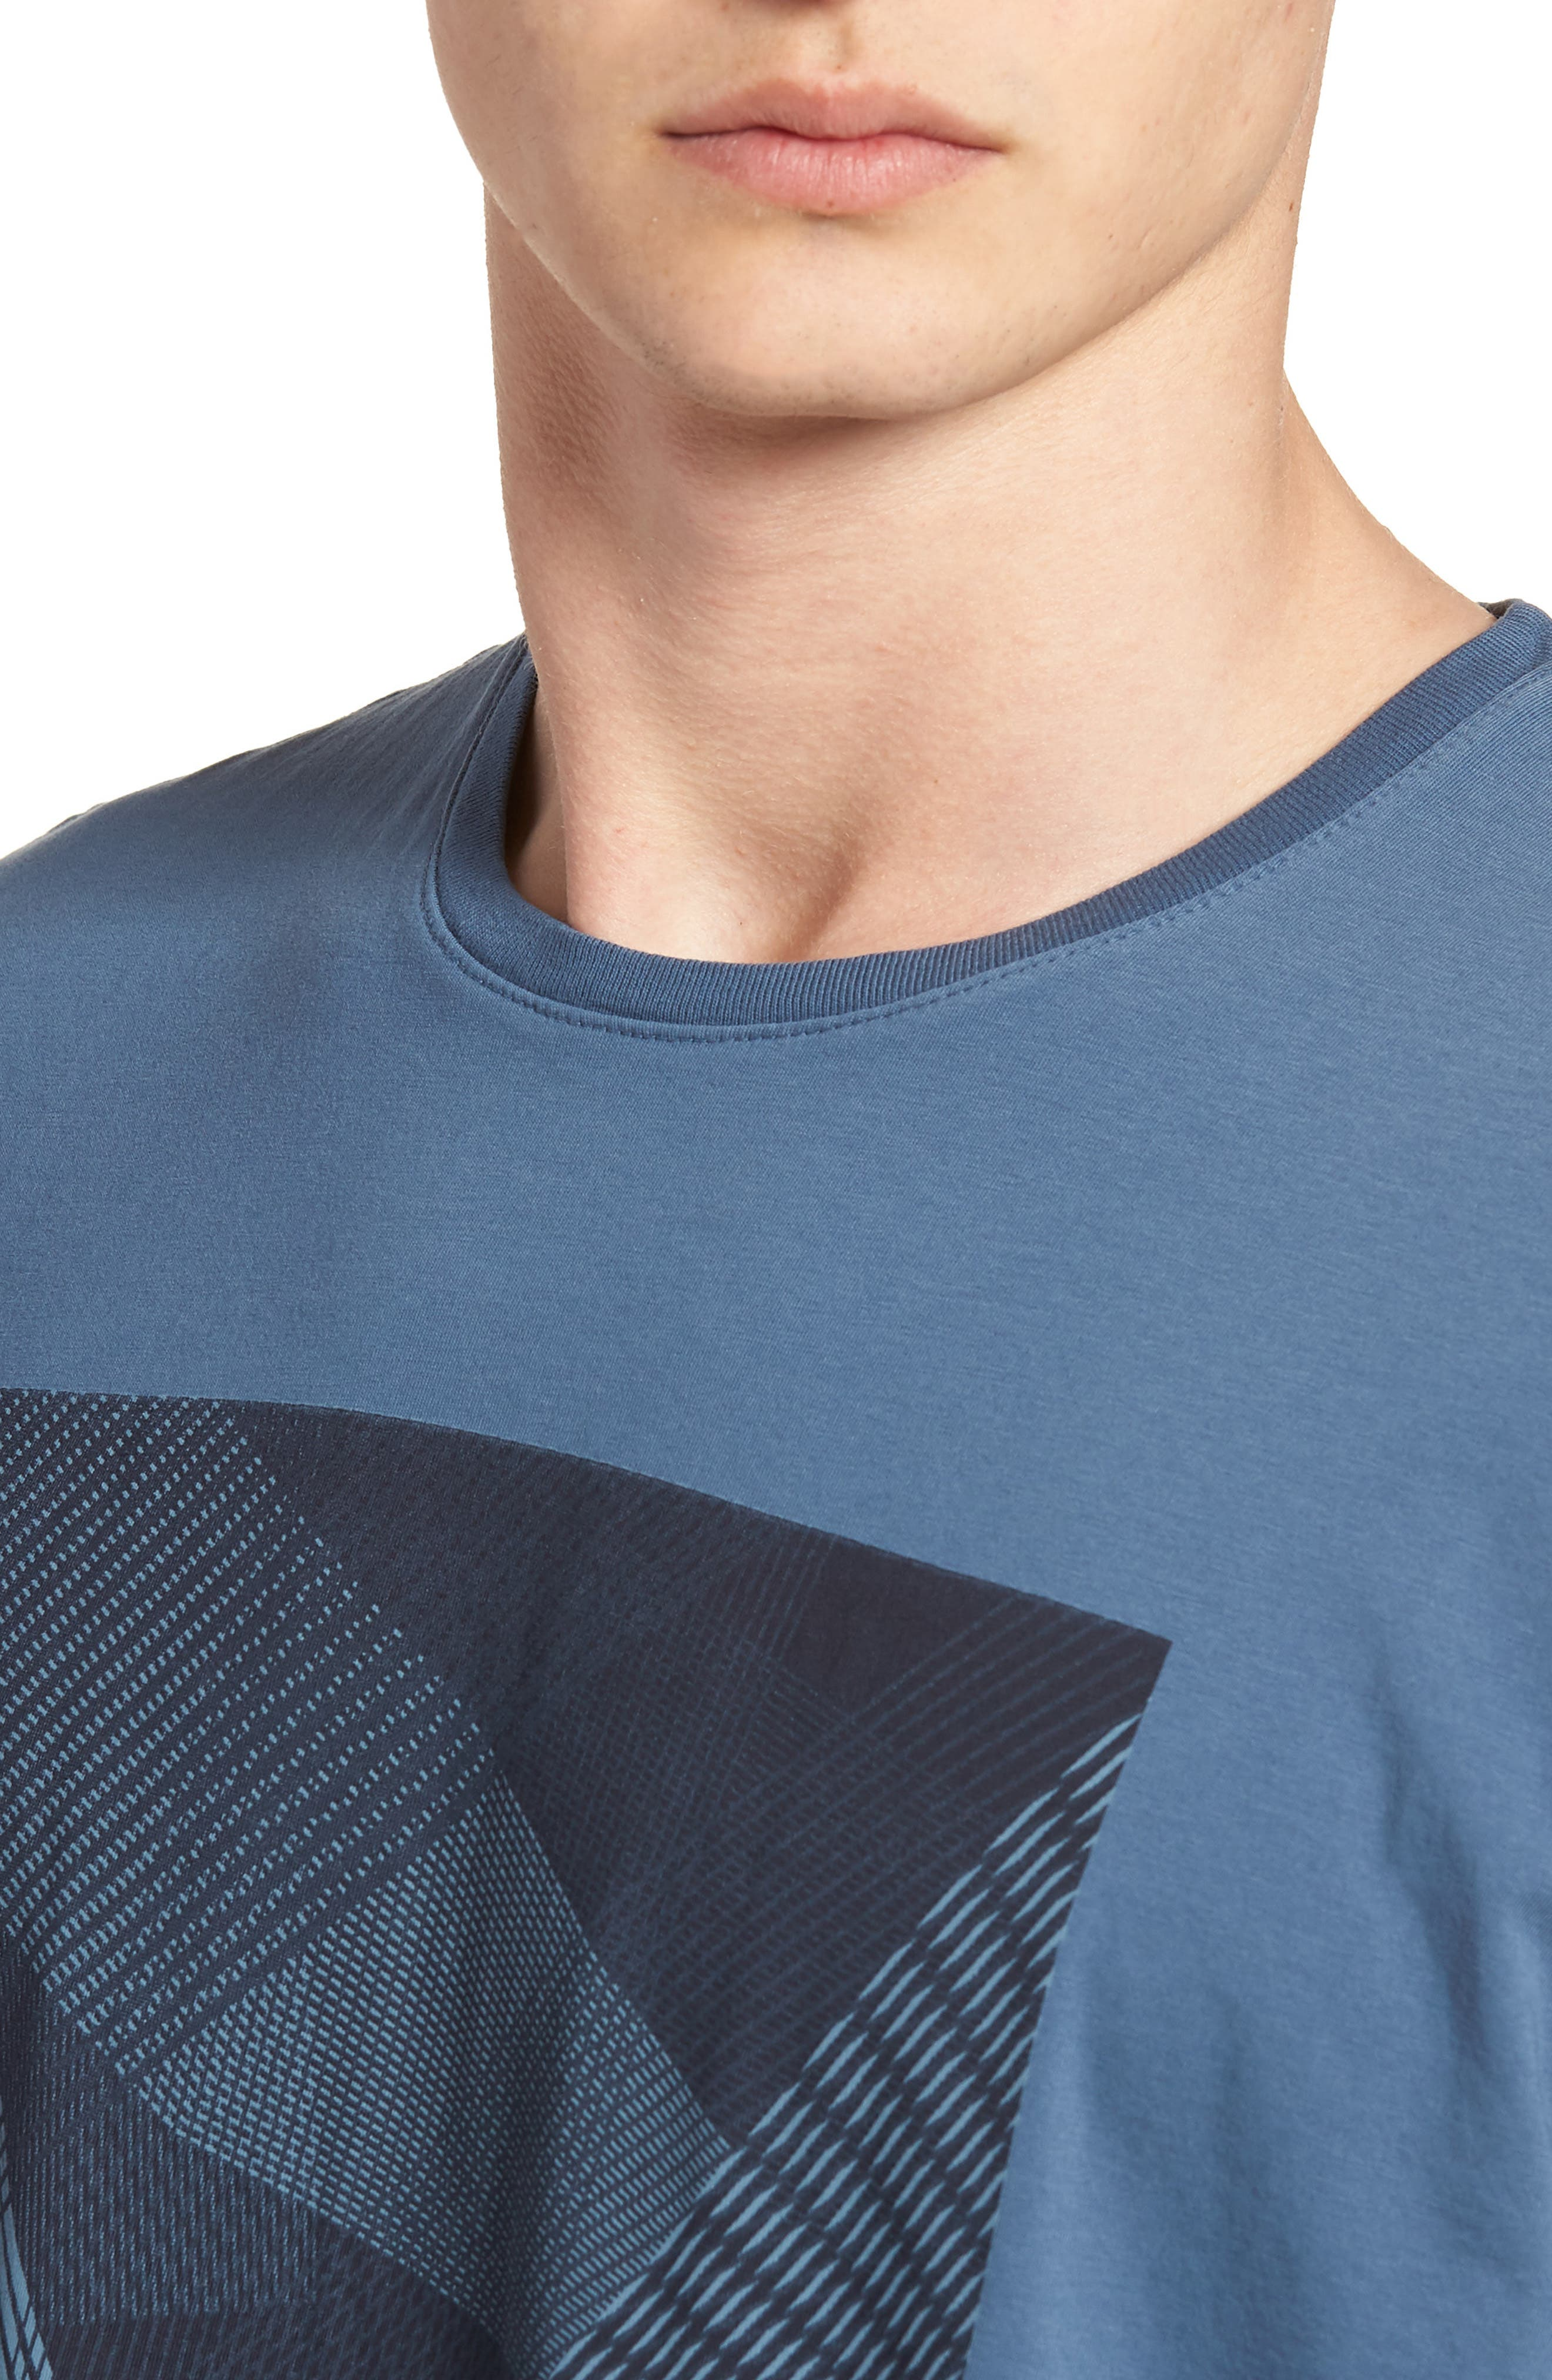 Line Matrix Graphic T-Shirt,                             Alternate thumbnail 3, color,                             Navy